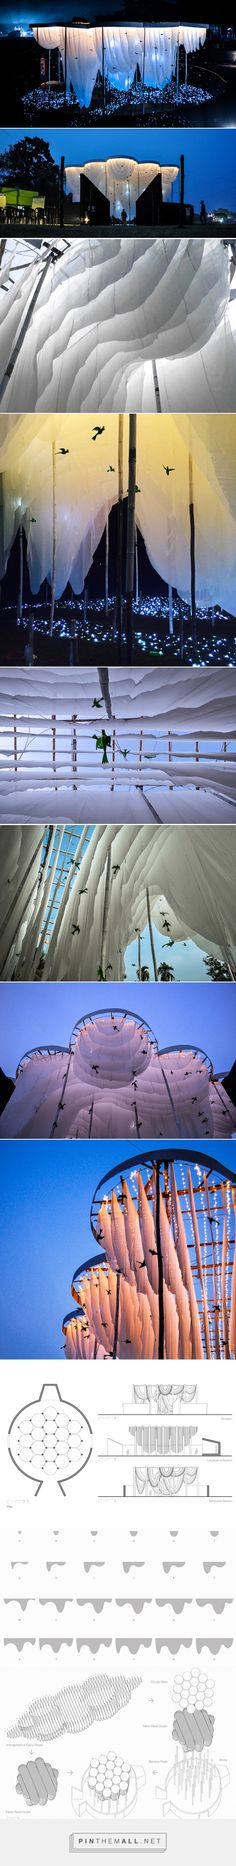 abin design studio creates pavilion of canopies for festival in india. - a grouped images picture - Pin Them All Nachhaltiges Design, Design Studio, Theatre Design, Stage Design, Conception Scénique, Art Sculpture, Stage Set, Scenic Design, Light Installation